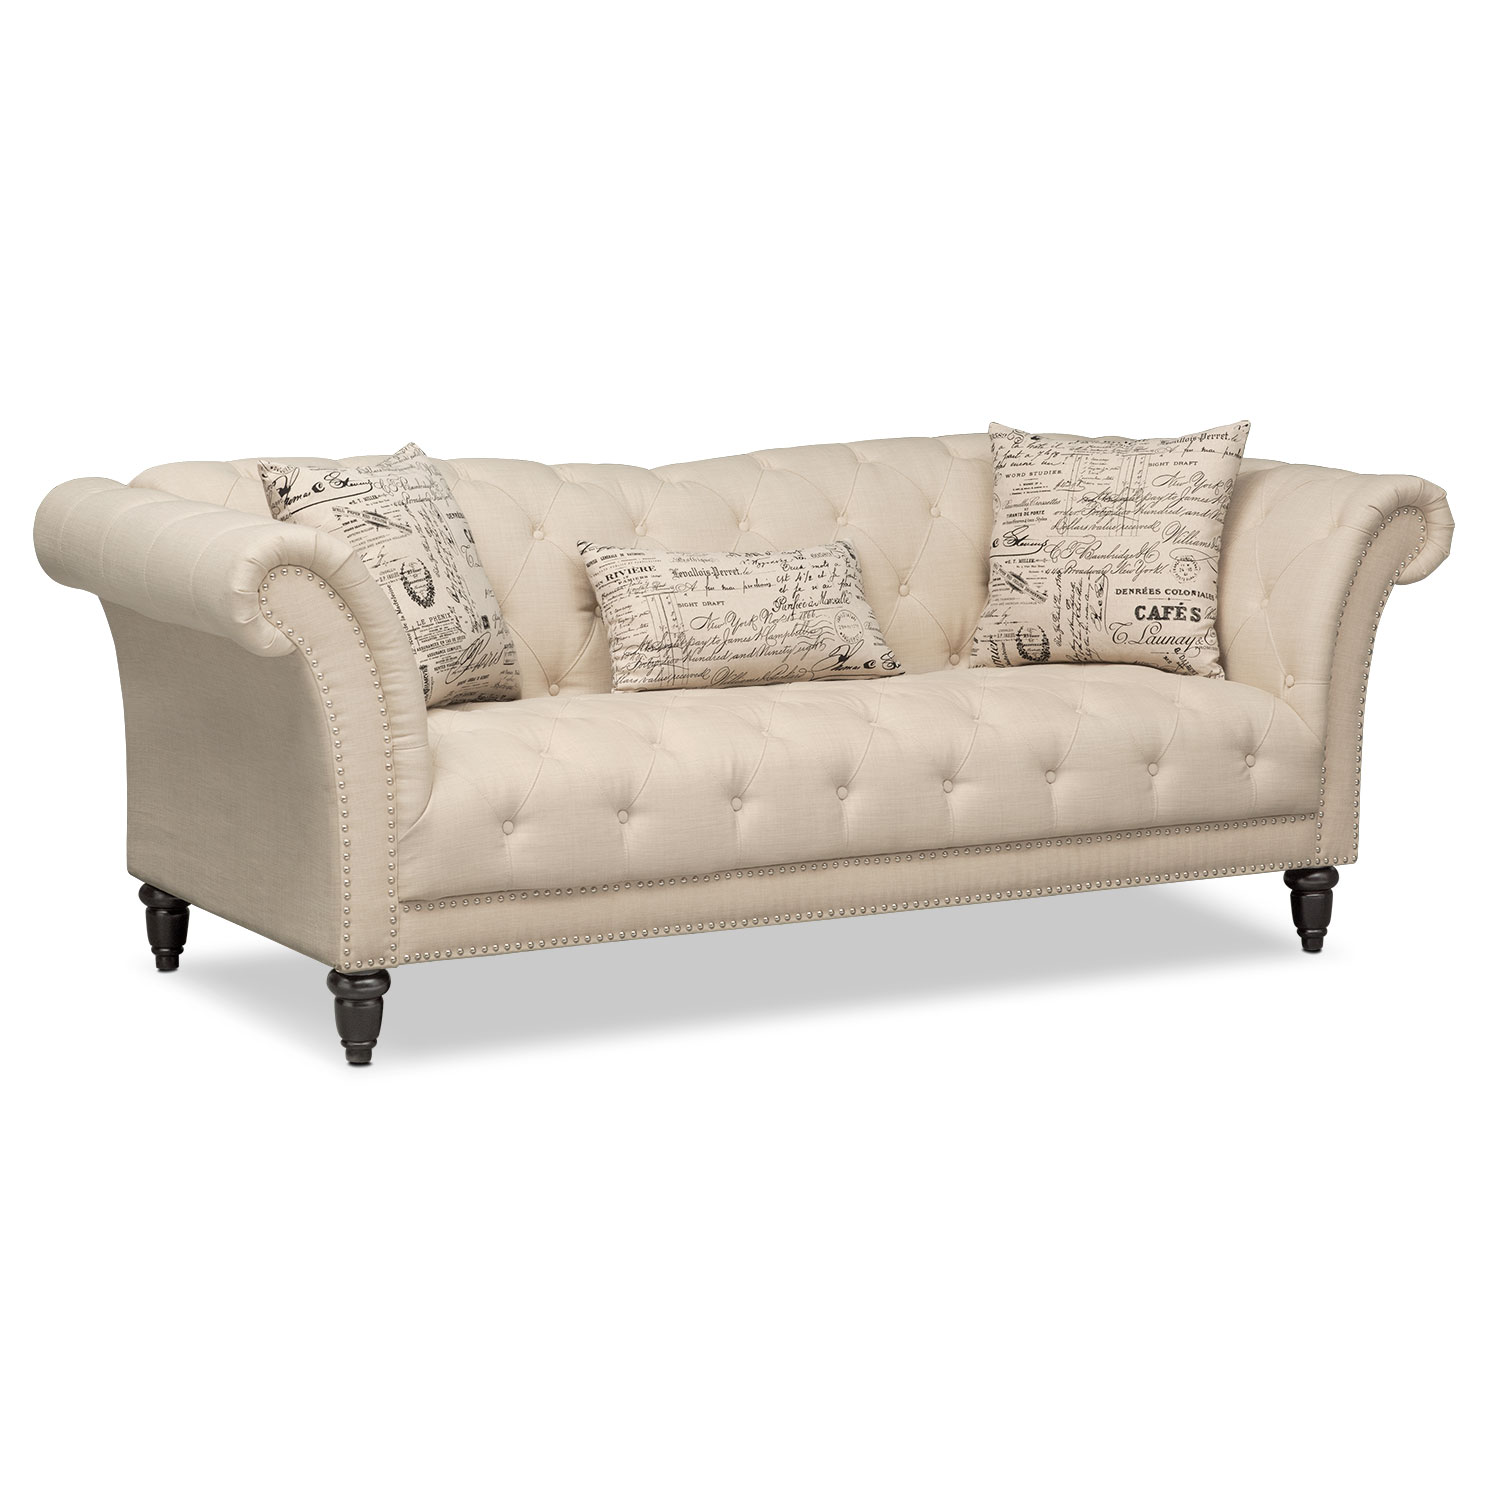 Marisol Sofa Beige Value City Furniture and Mattresses : 456434 from www.valuecityfurniture.com size 1500 x 1500 jpeg 154kB